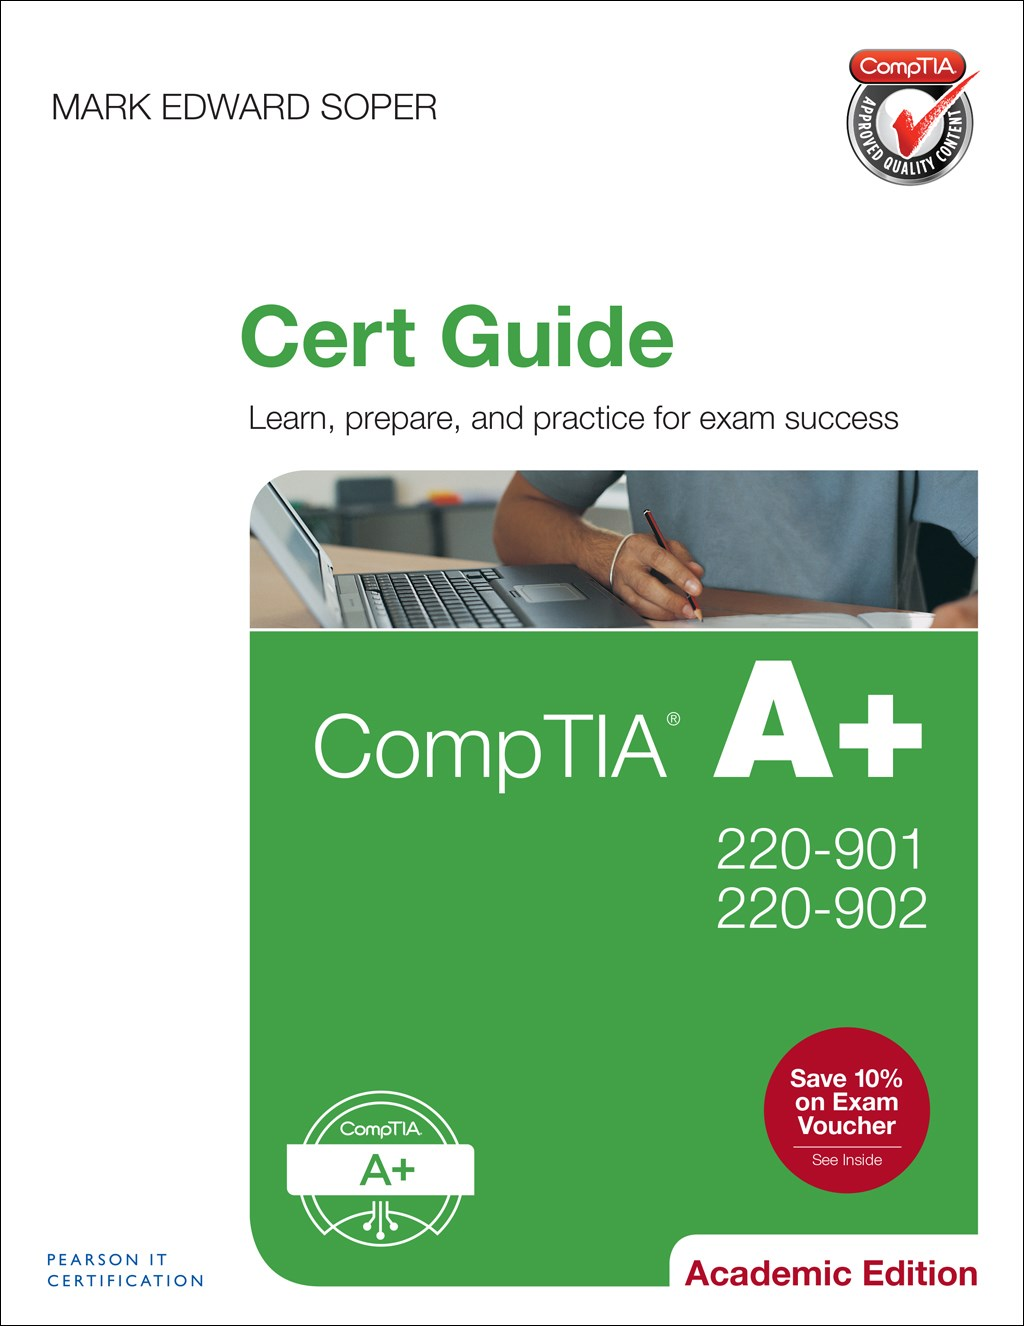 CompTIA A+ 220-901 and 220-902 Cert Guide, Academic Edition, Premium Edition and Practice Test